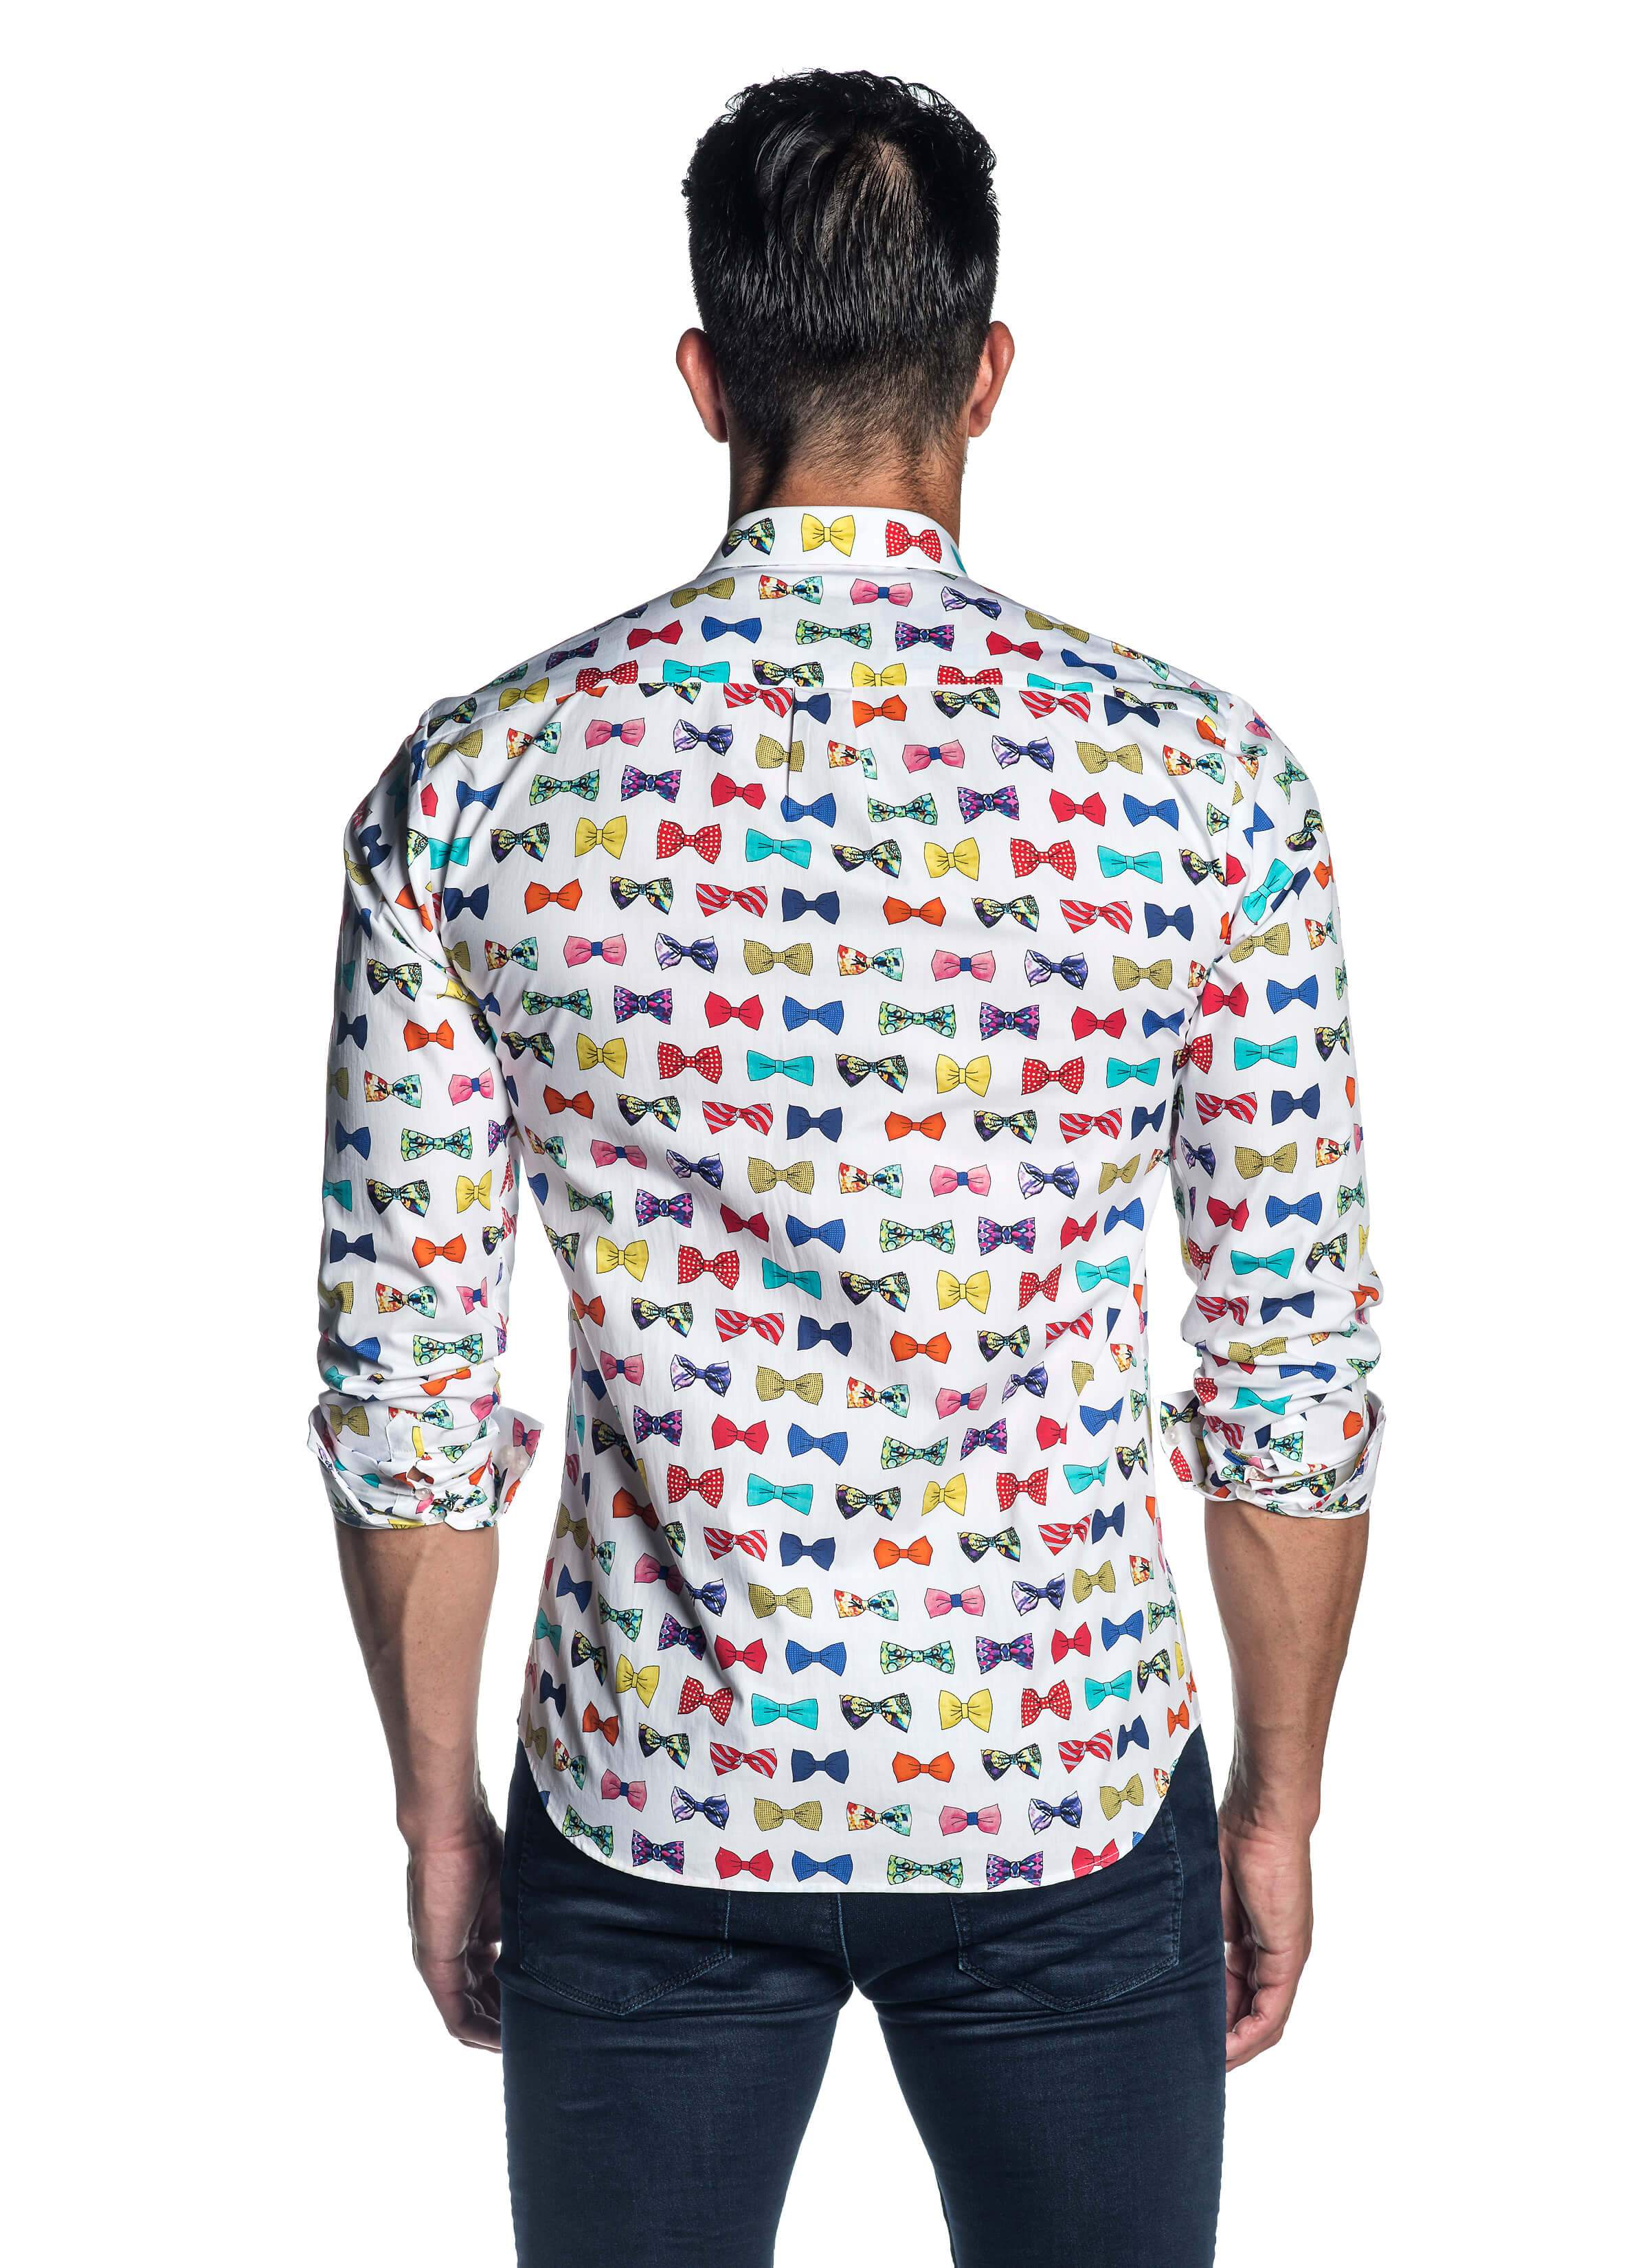 White Bow Tie Pattern Long Sleeve Shirt for Men - Back - AH-T-741